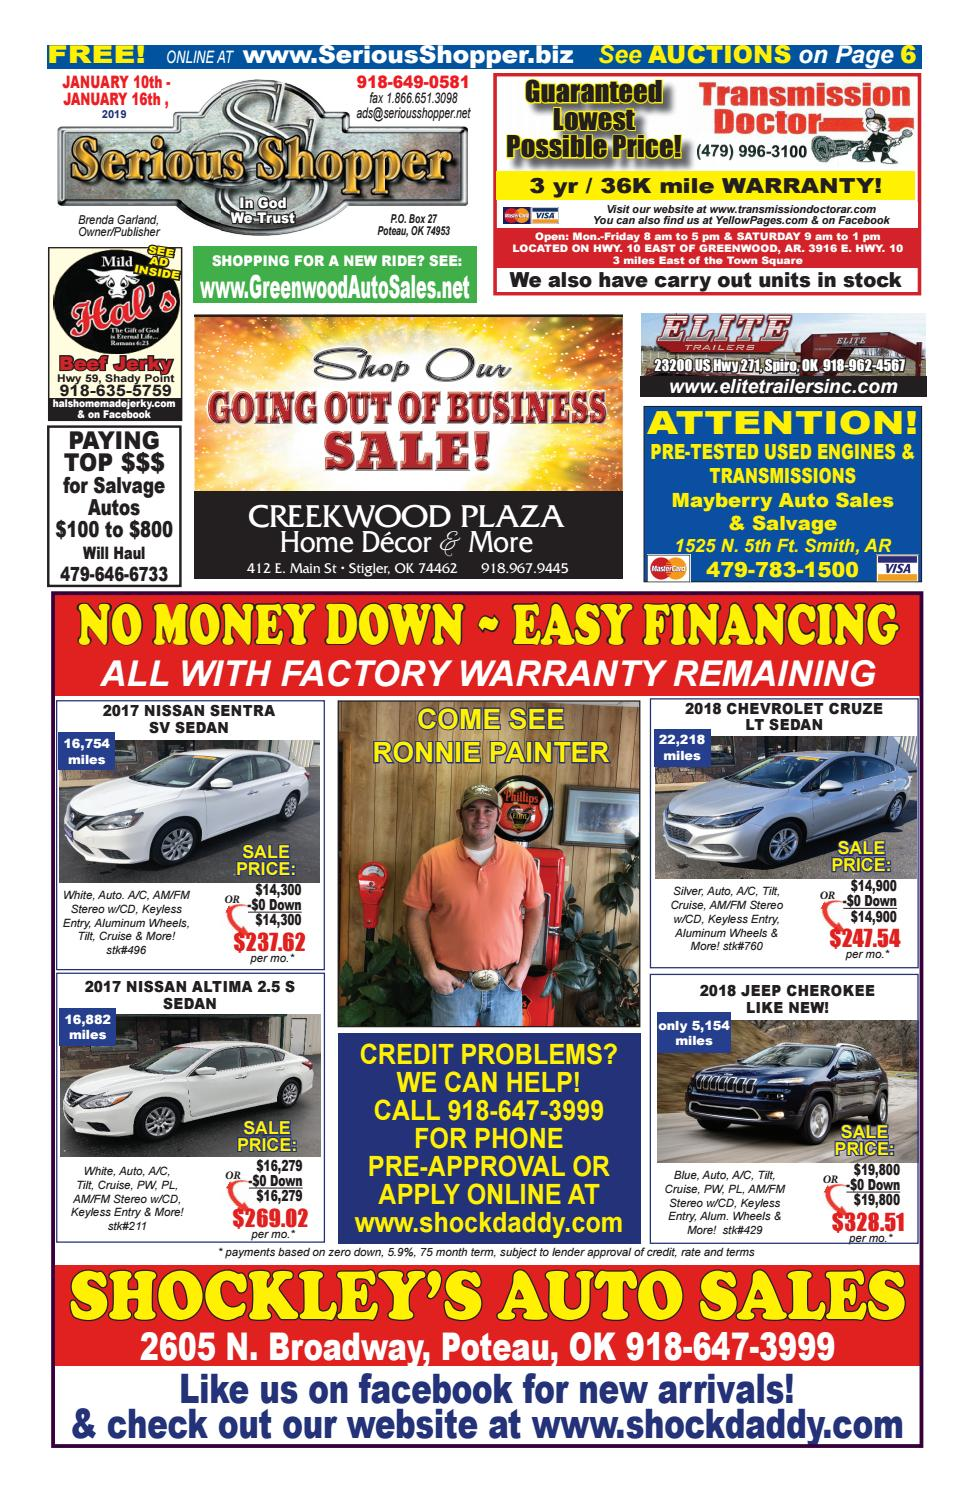 Shockley Auto Sales >> Serious Shopper 1 10 2019 By Serious Shopper Issuu